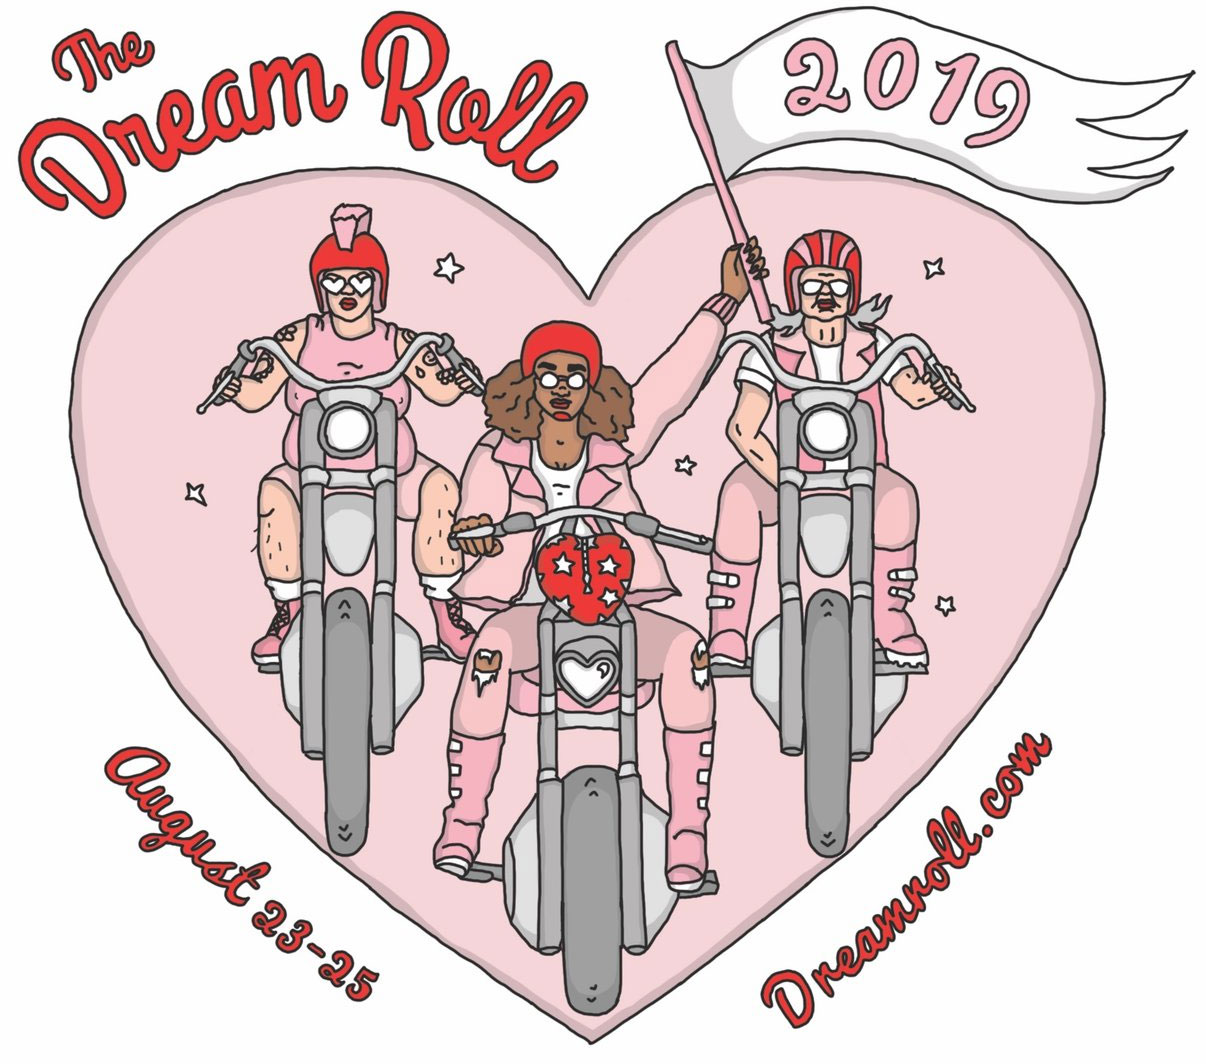 The Dream Roll - Women's Only Motorcycle Camp Trip Ashland,OR